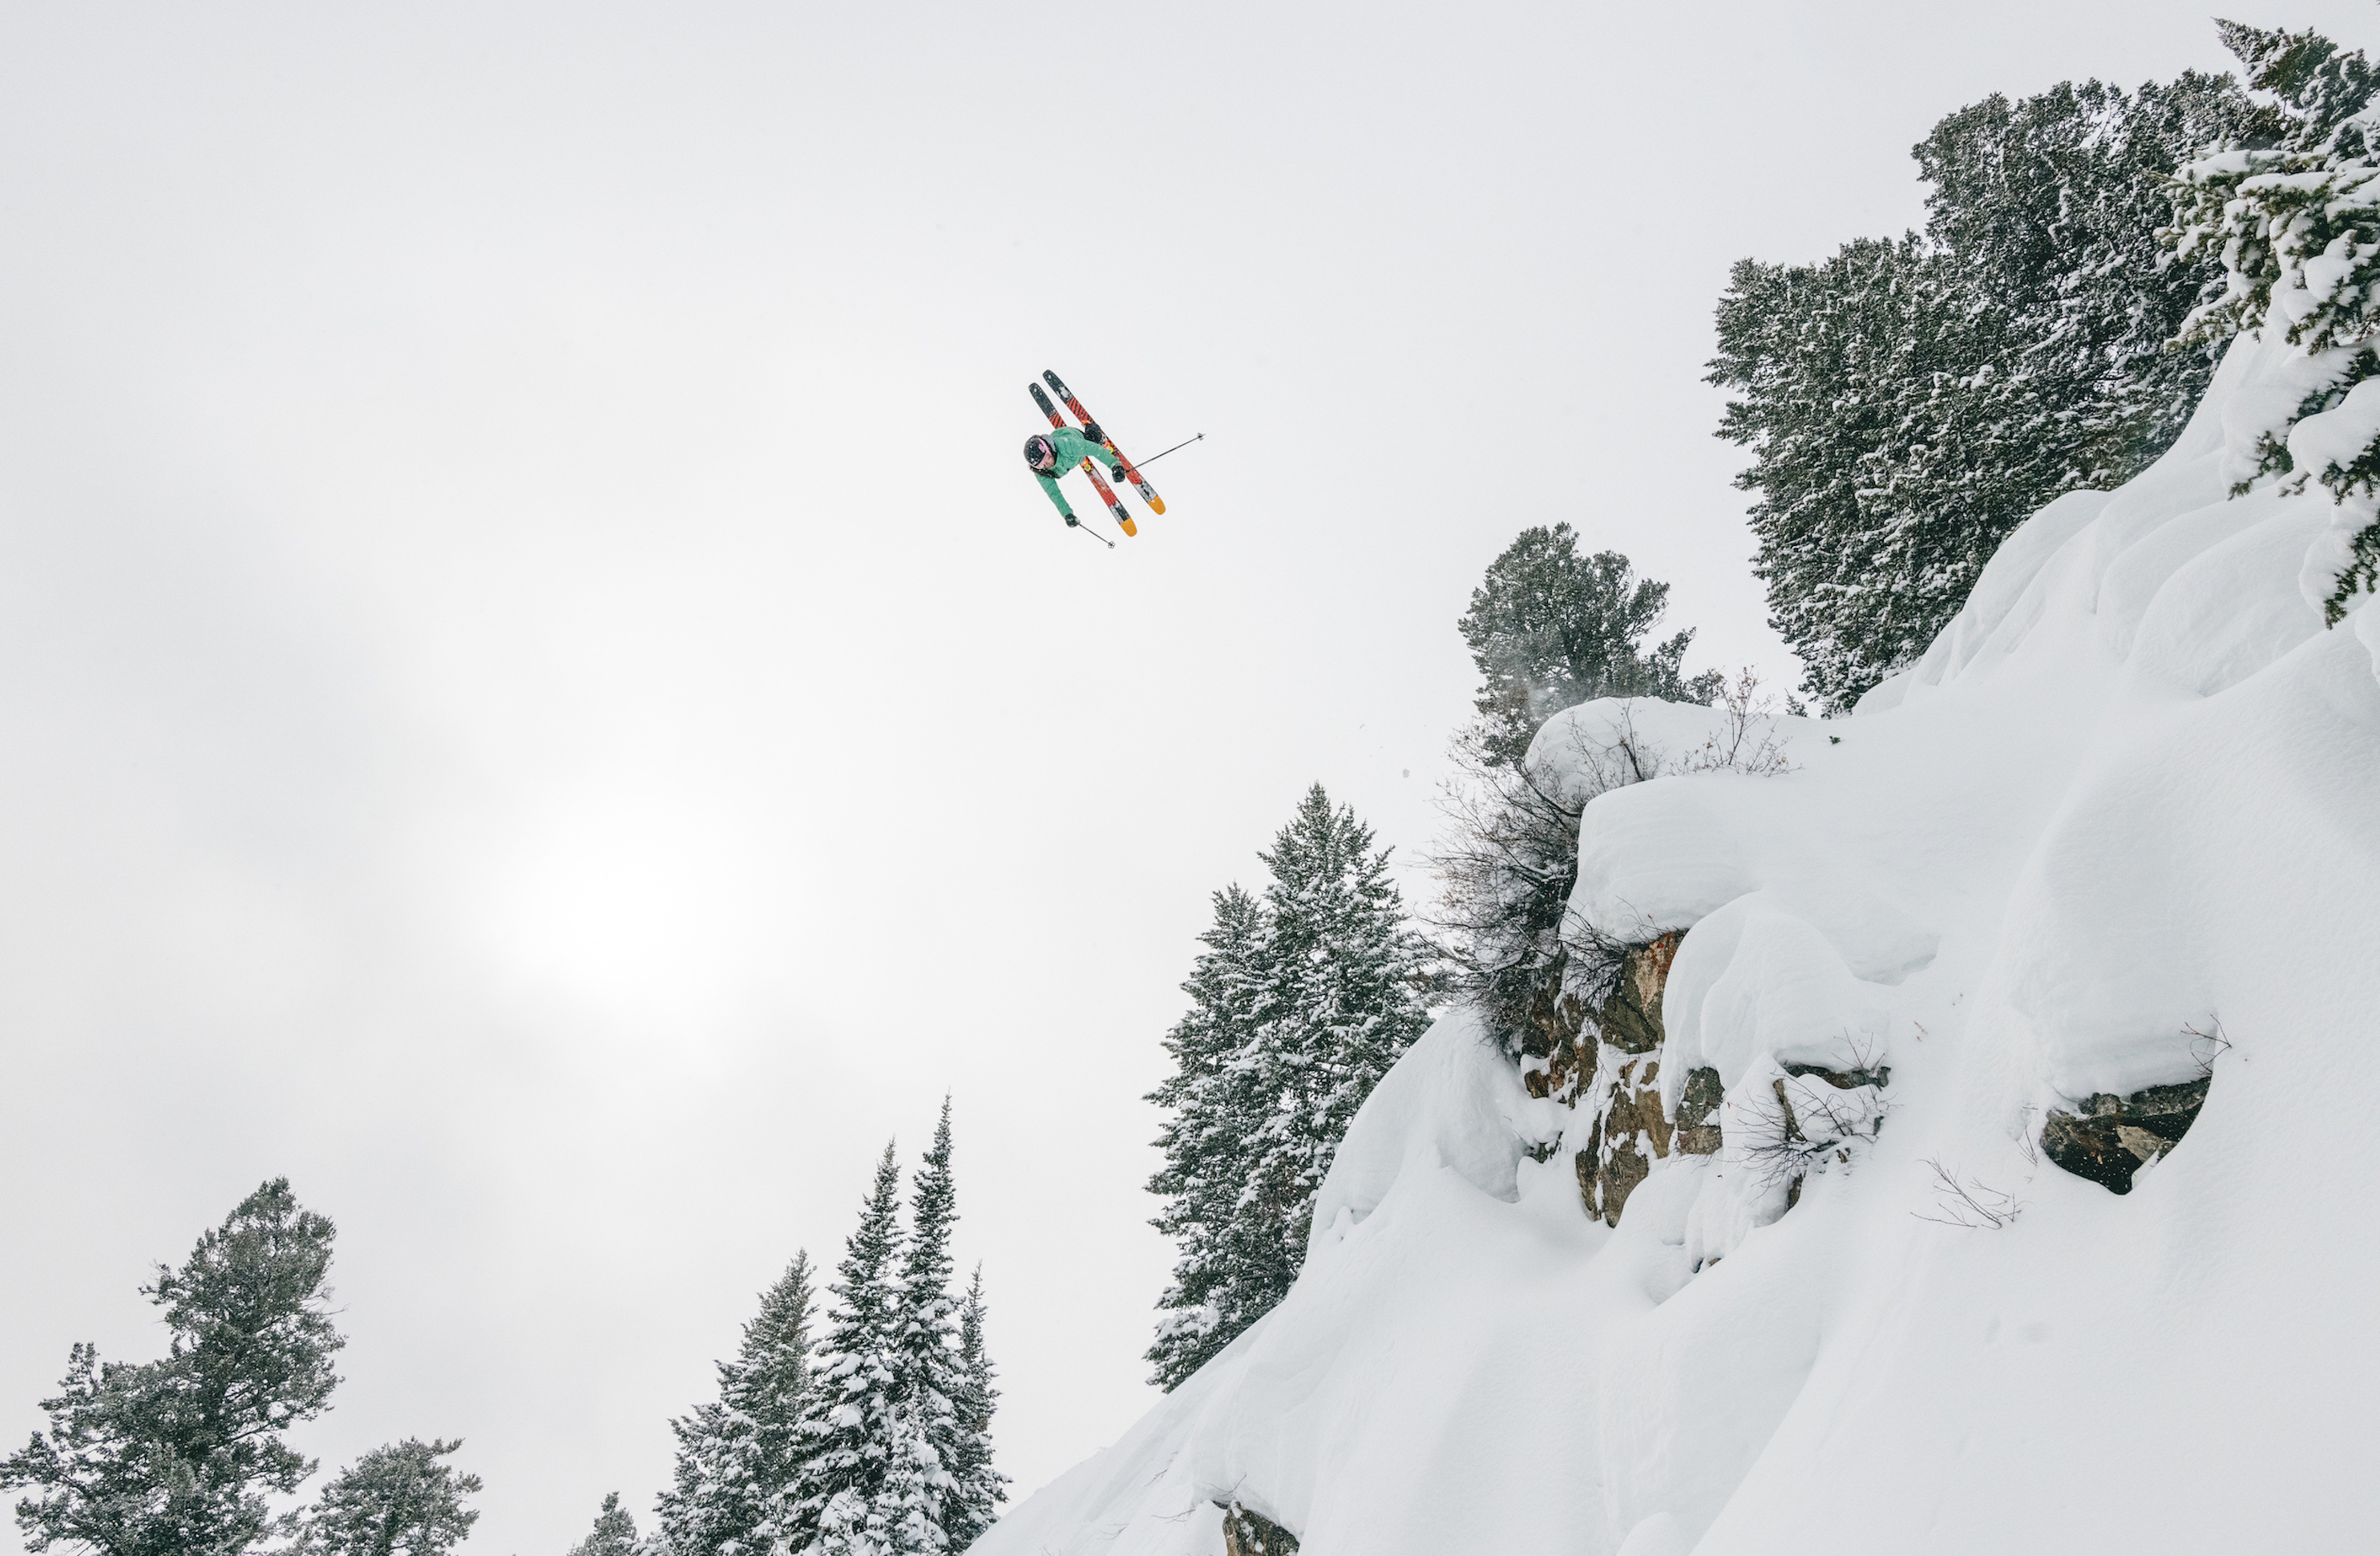 skier Veronica Belle catching major air off jump in Jackson Hole